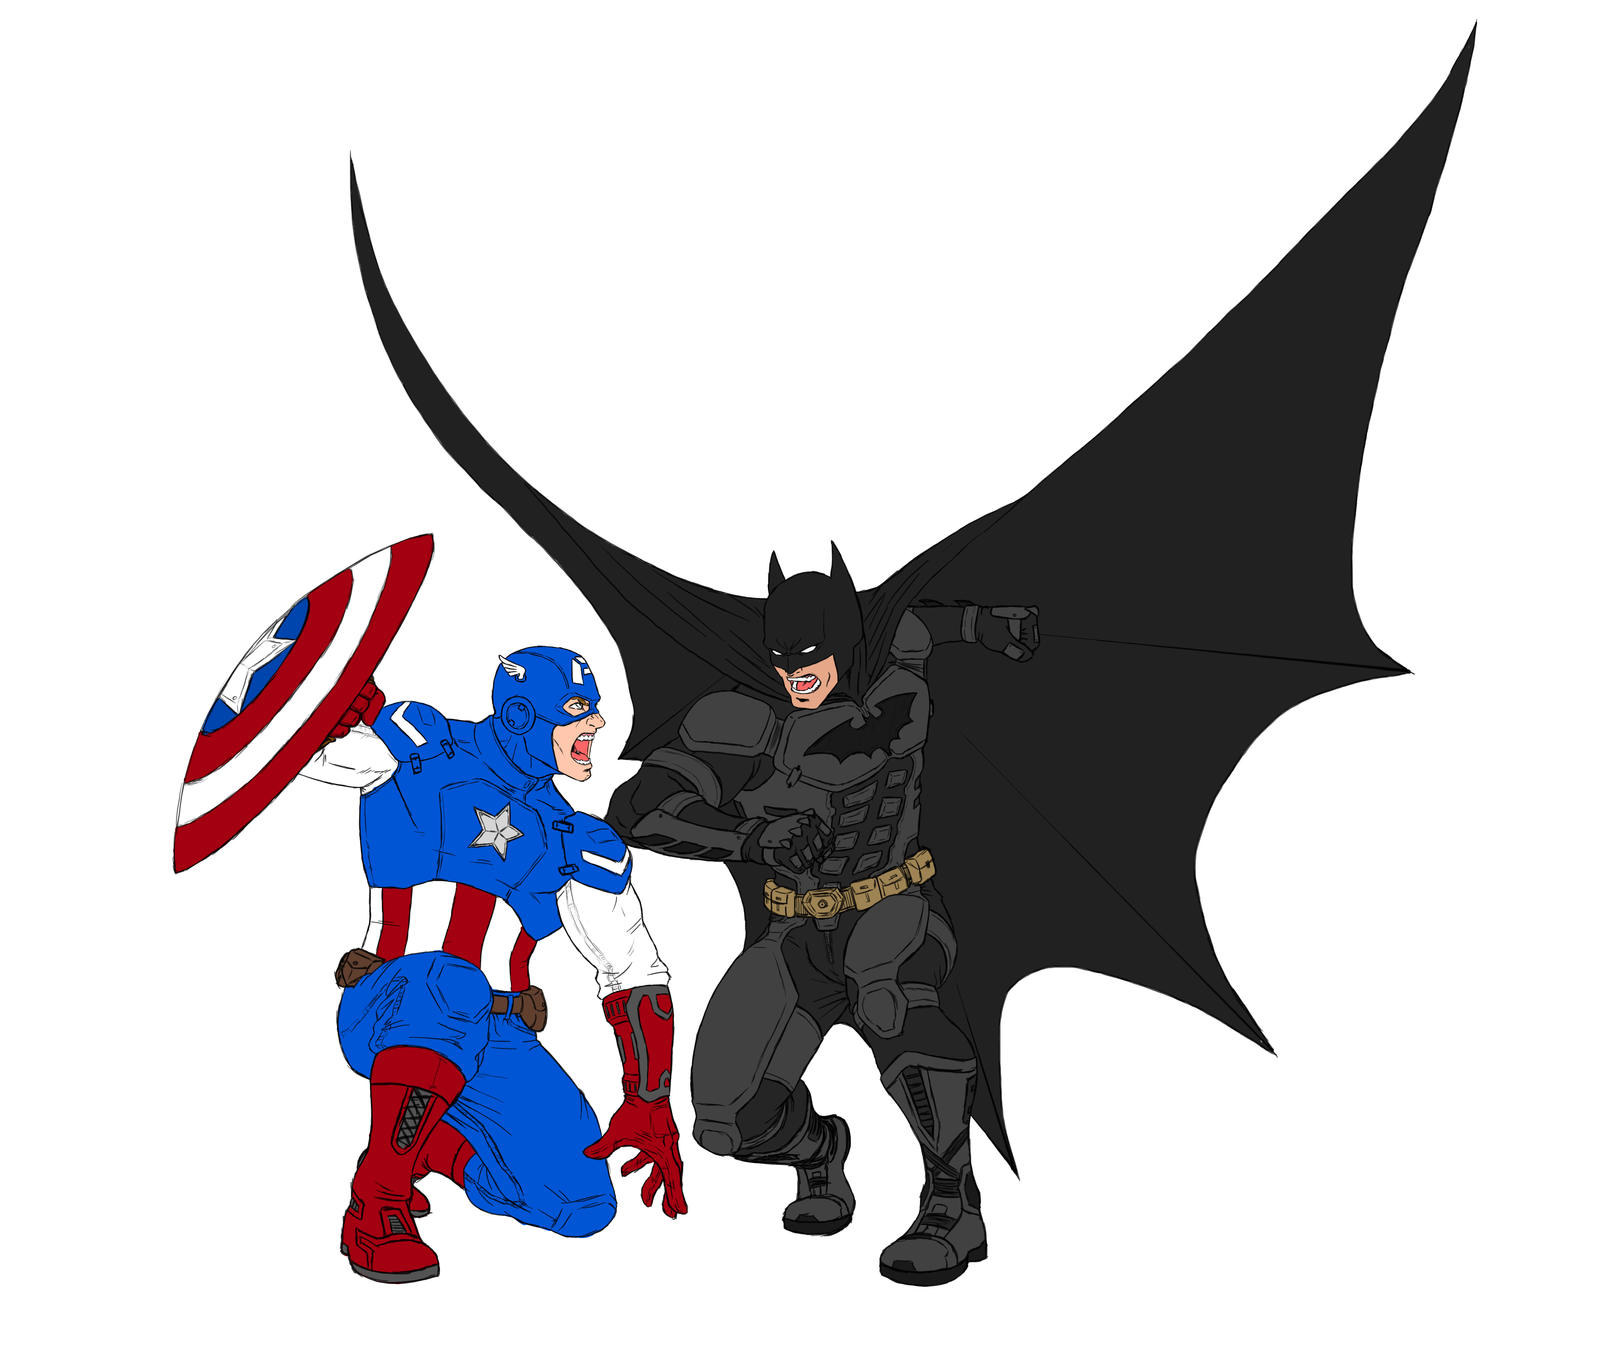 Captain america vs batman drawings